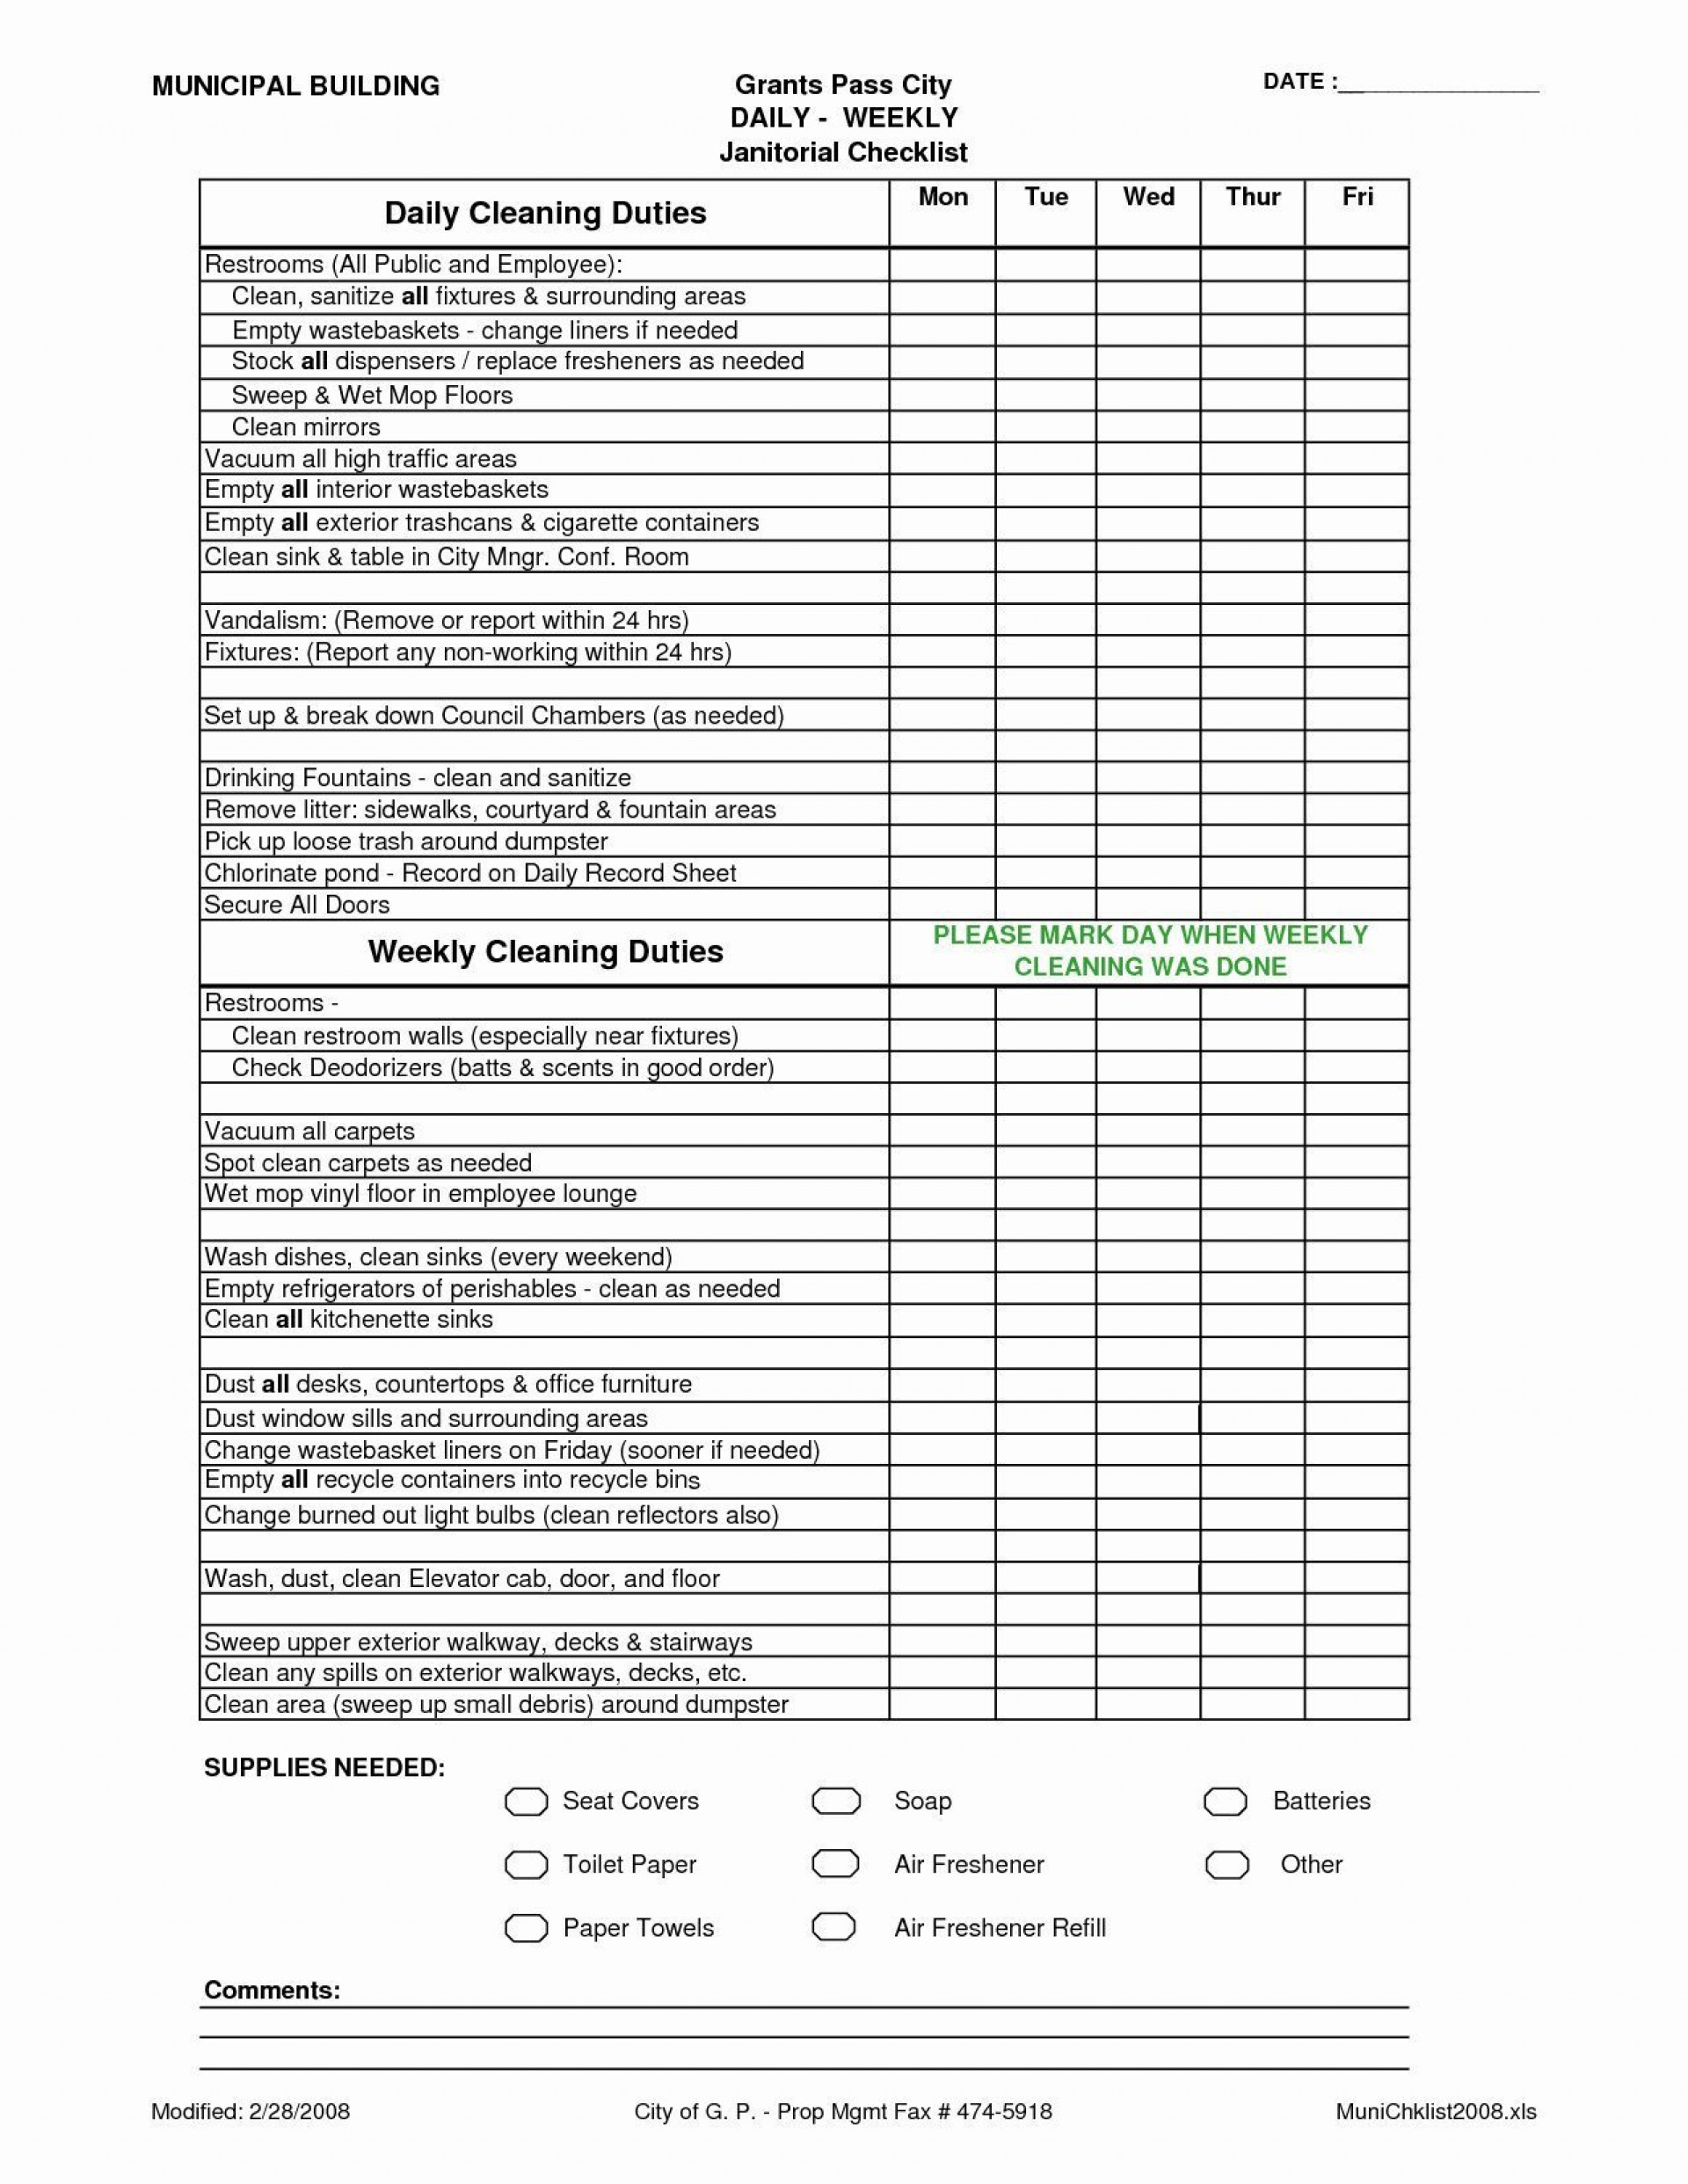 005 Breathtaking House Cleaning Schedule Template Excel Highest Clarity 1920